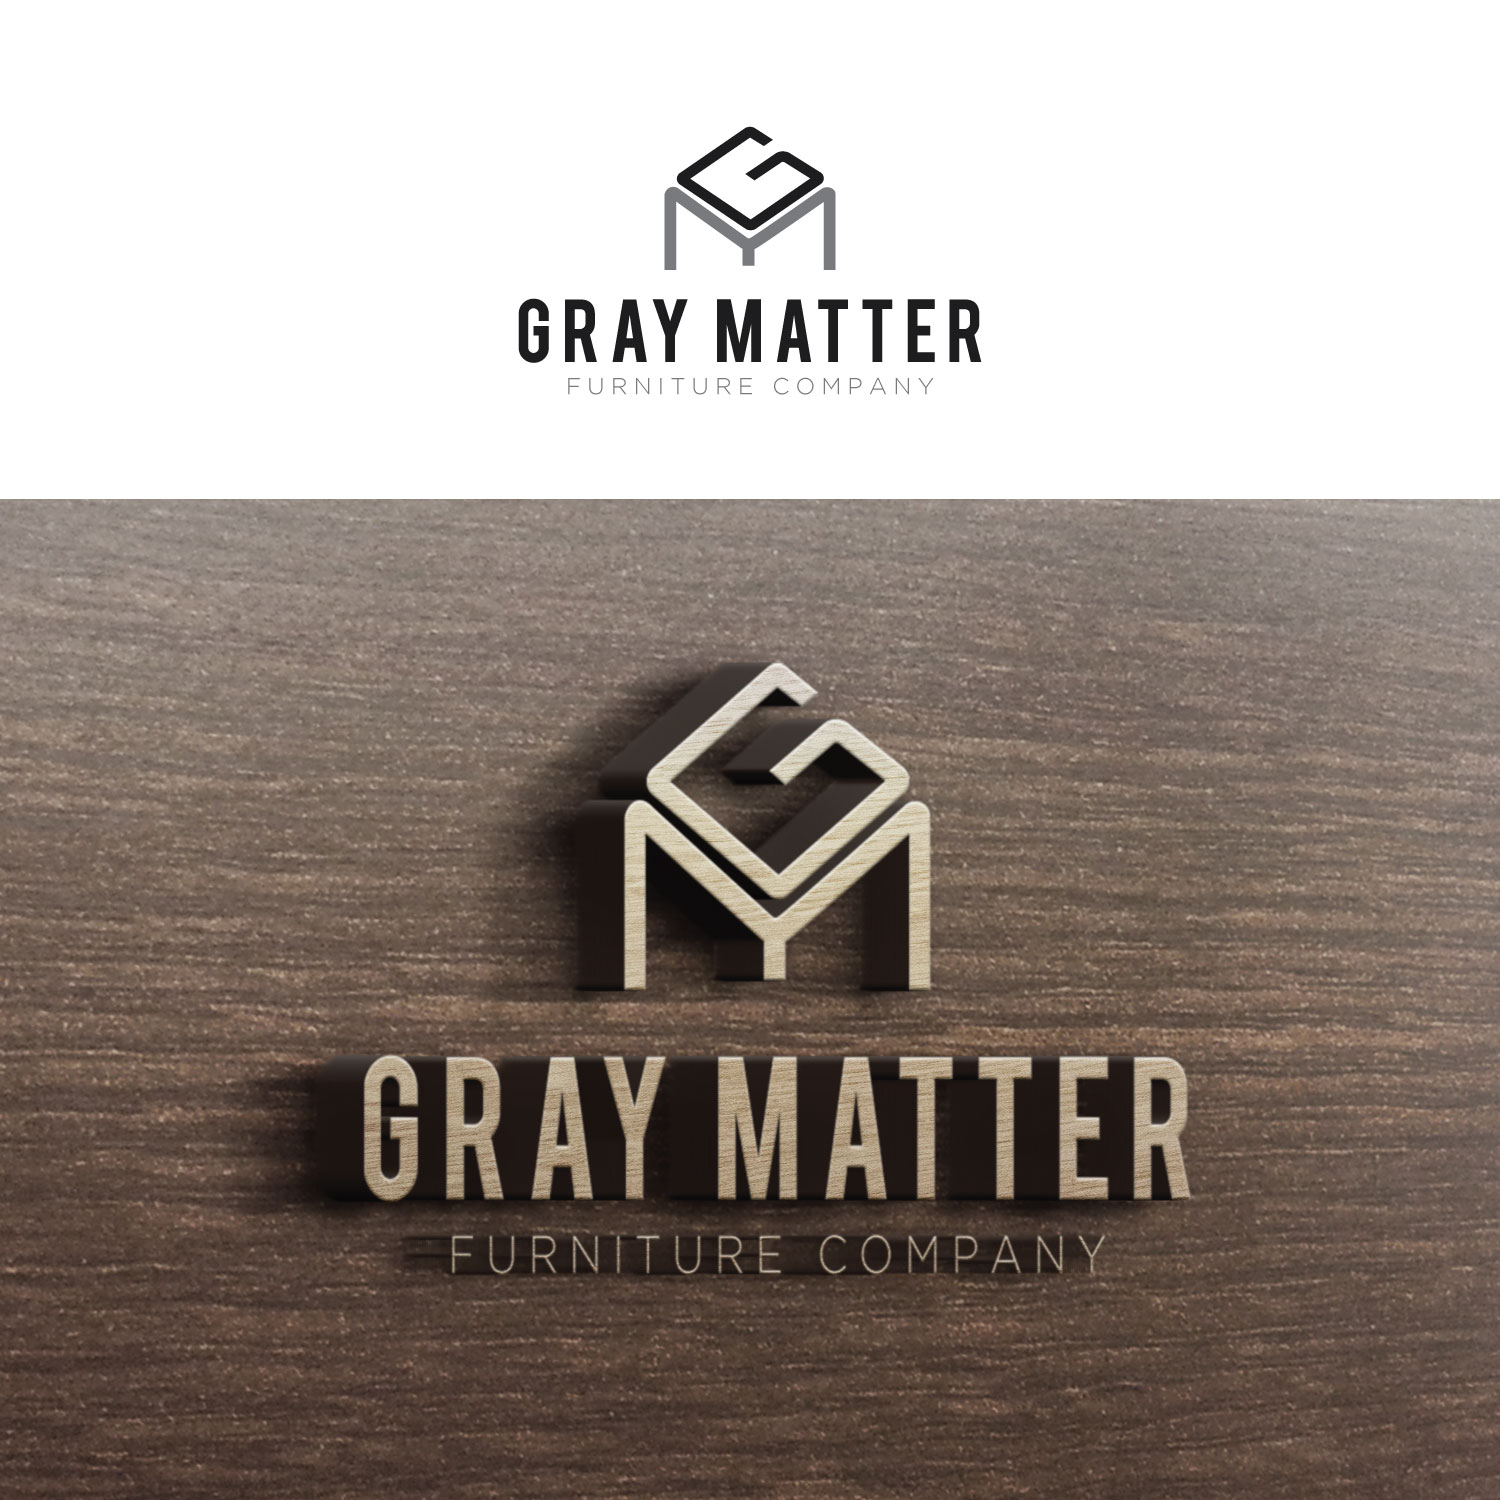 modern, serious, it company logo design for gray matter